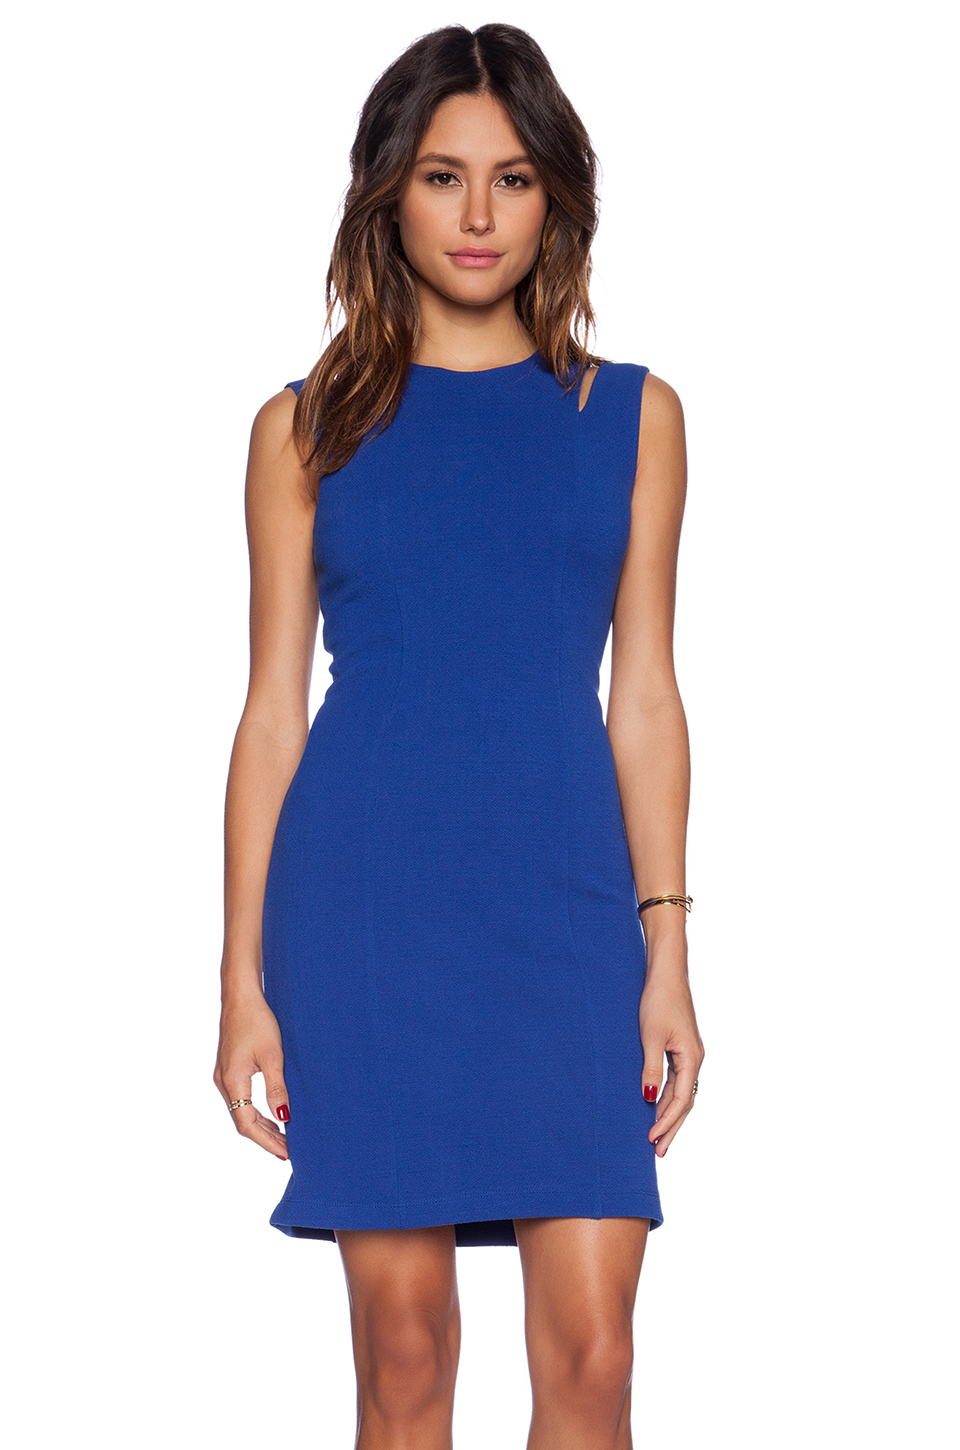 Galerry party dress at forever 21